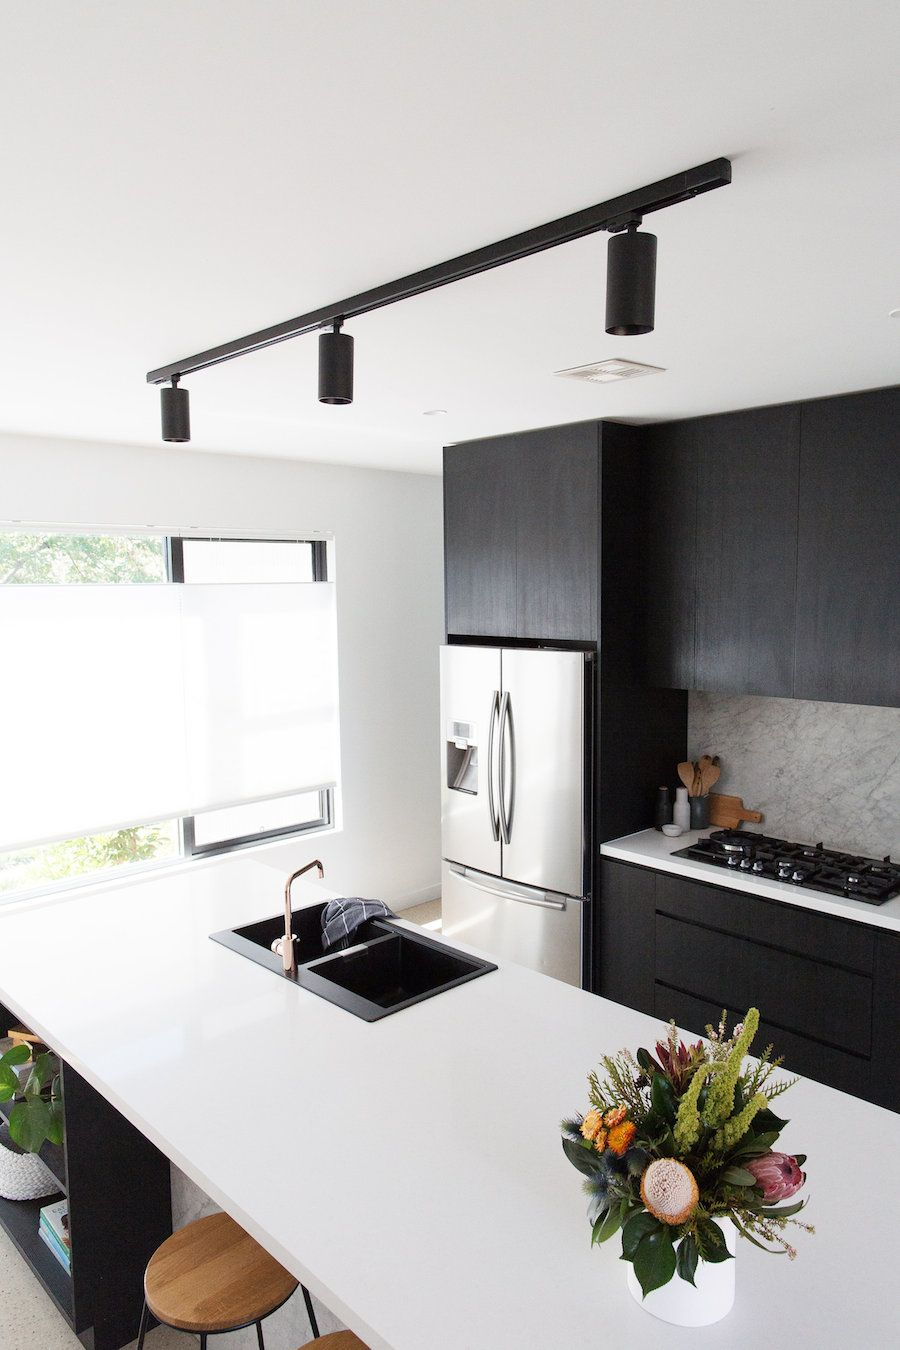 Black Kitchen Light Gina S Home New Black Track Ceiling Mount Light In The Kitchen